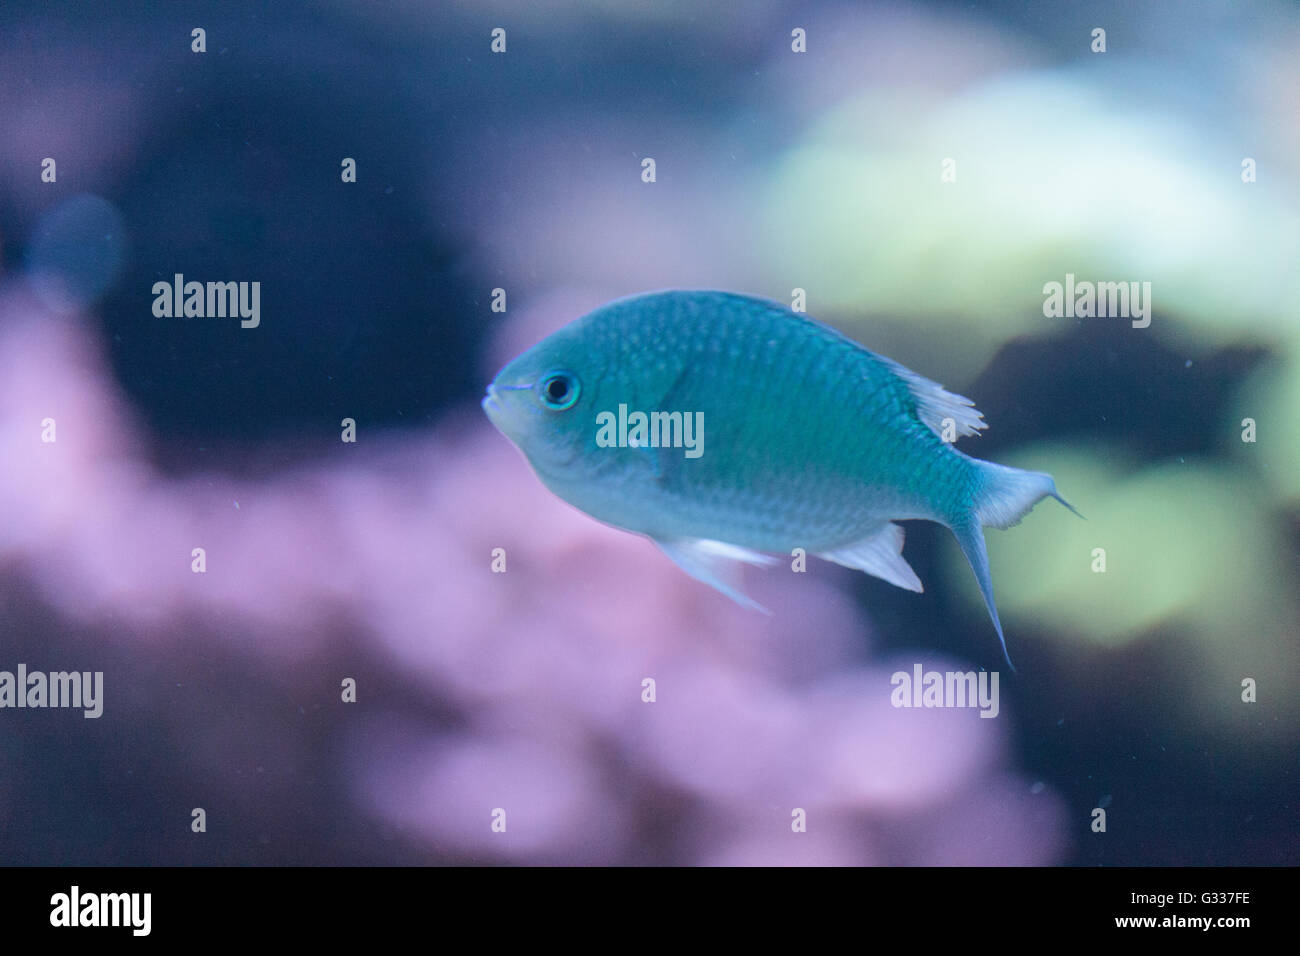 Bluegreen chomis fish, Chromis viridis, has a pale green color and is found on the reef - Stock Image